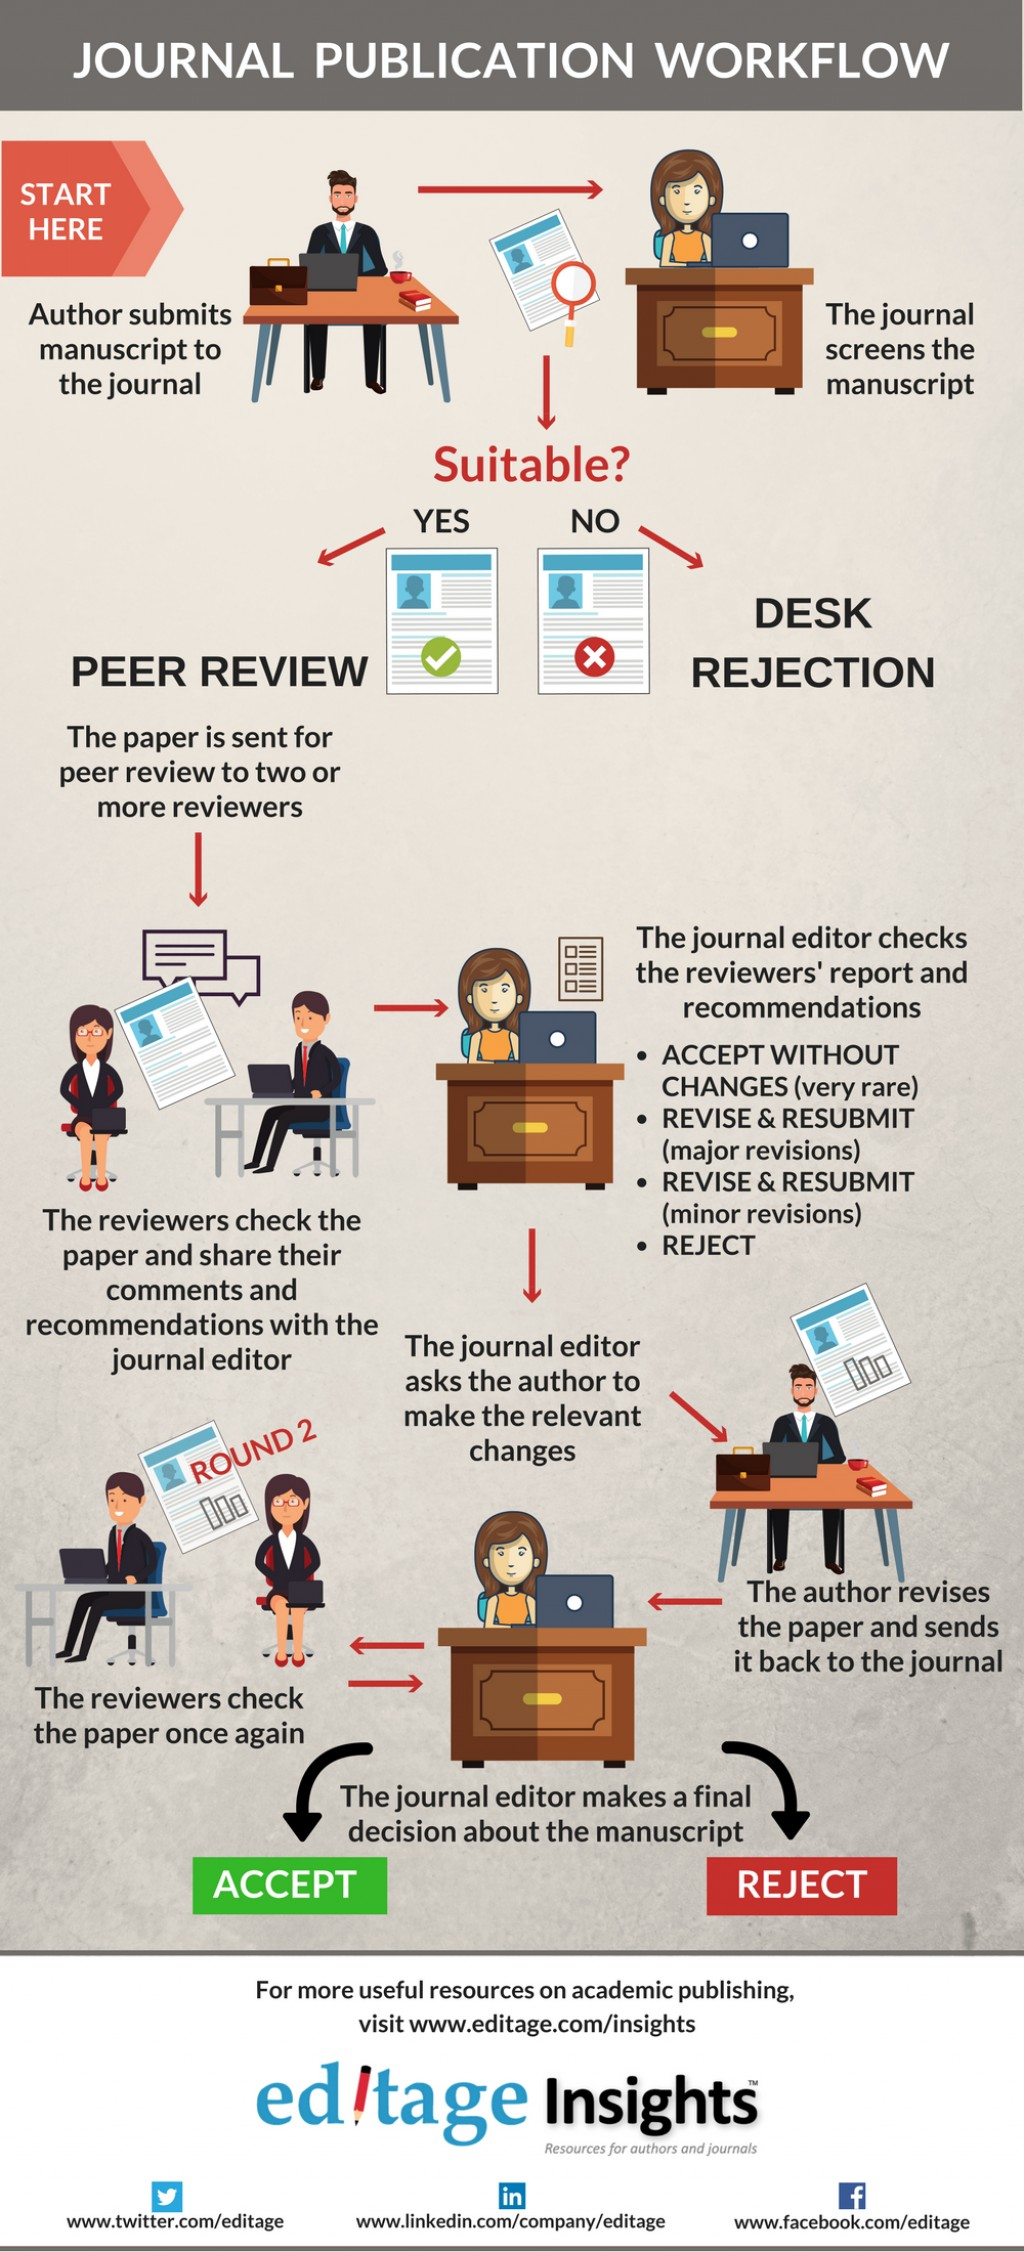 002 Journal Publishing Workflow Journals To Publish Researchs Beautiful Research Papers International Paper In India List Of Best Large